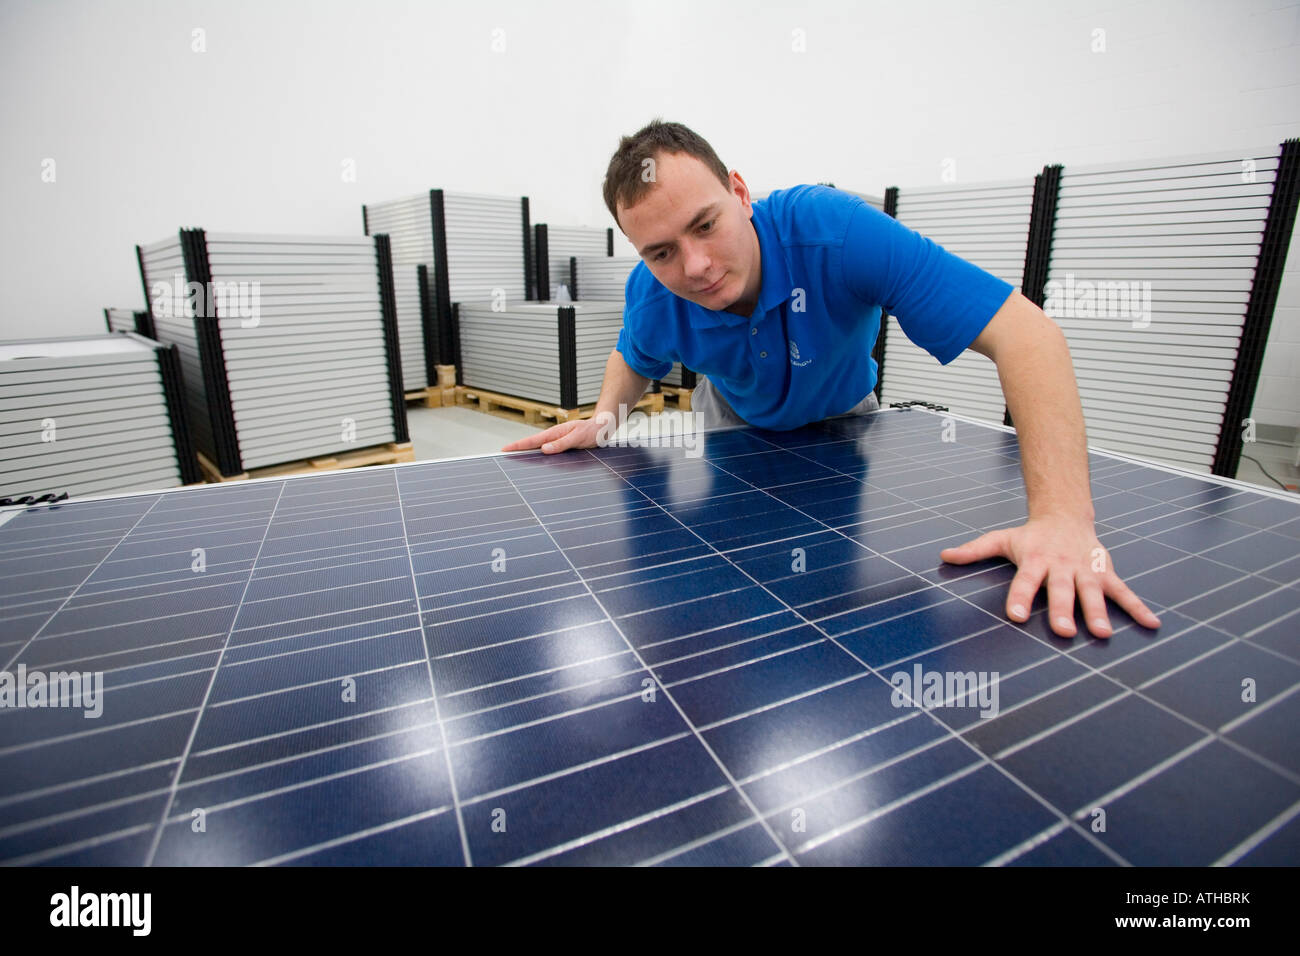 Conergy SolarModule GmbH Co KG production of solar modules - Stock Image